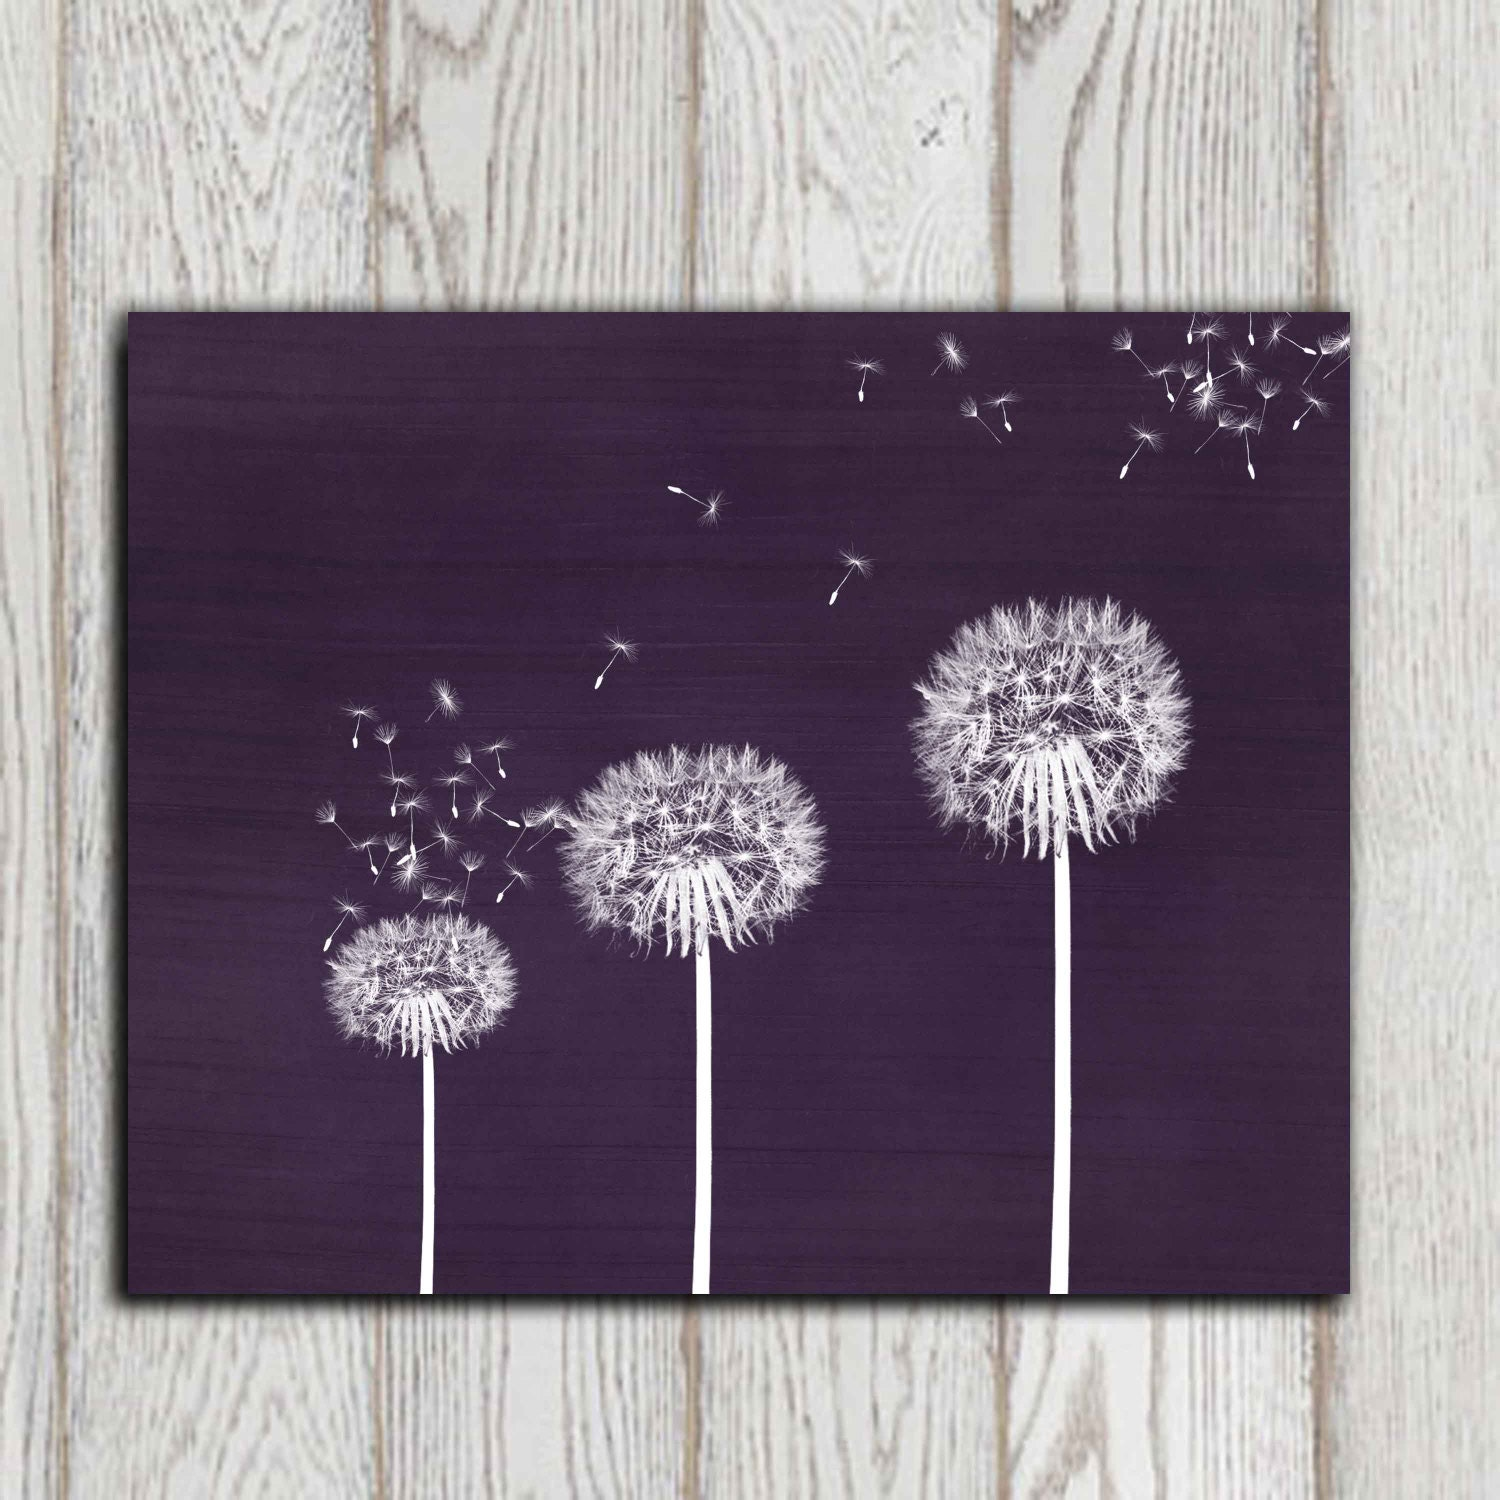 Gift Idea Dandelion Printable Purple Dandelion Print Wall Art Home Decor Canvas Bedroom Wall Decor 5x7